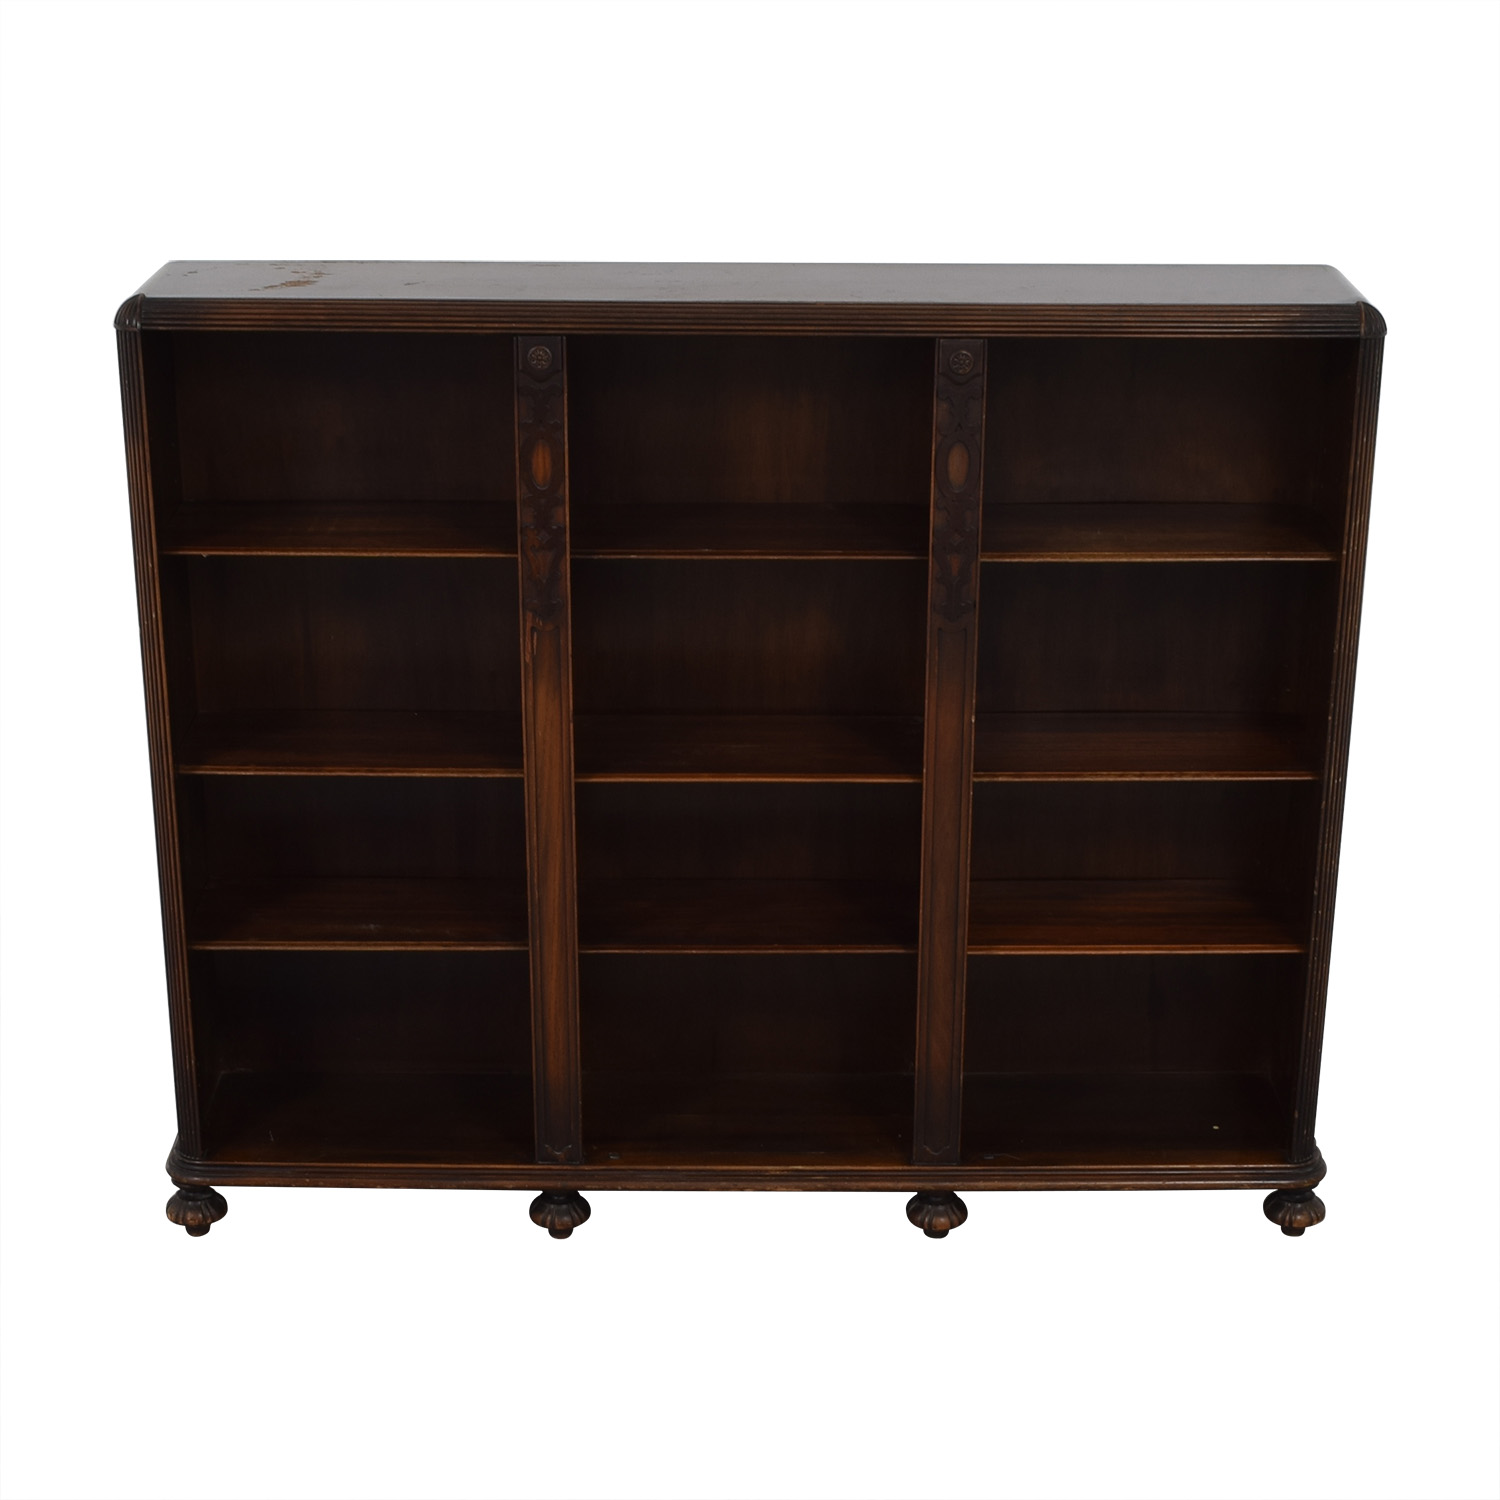 buy  Three Tiered Wood Book Case online